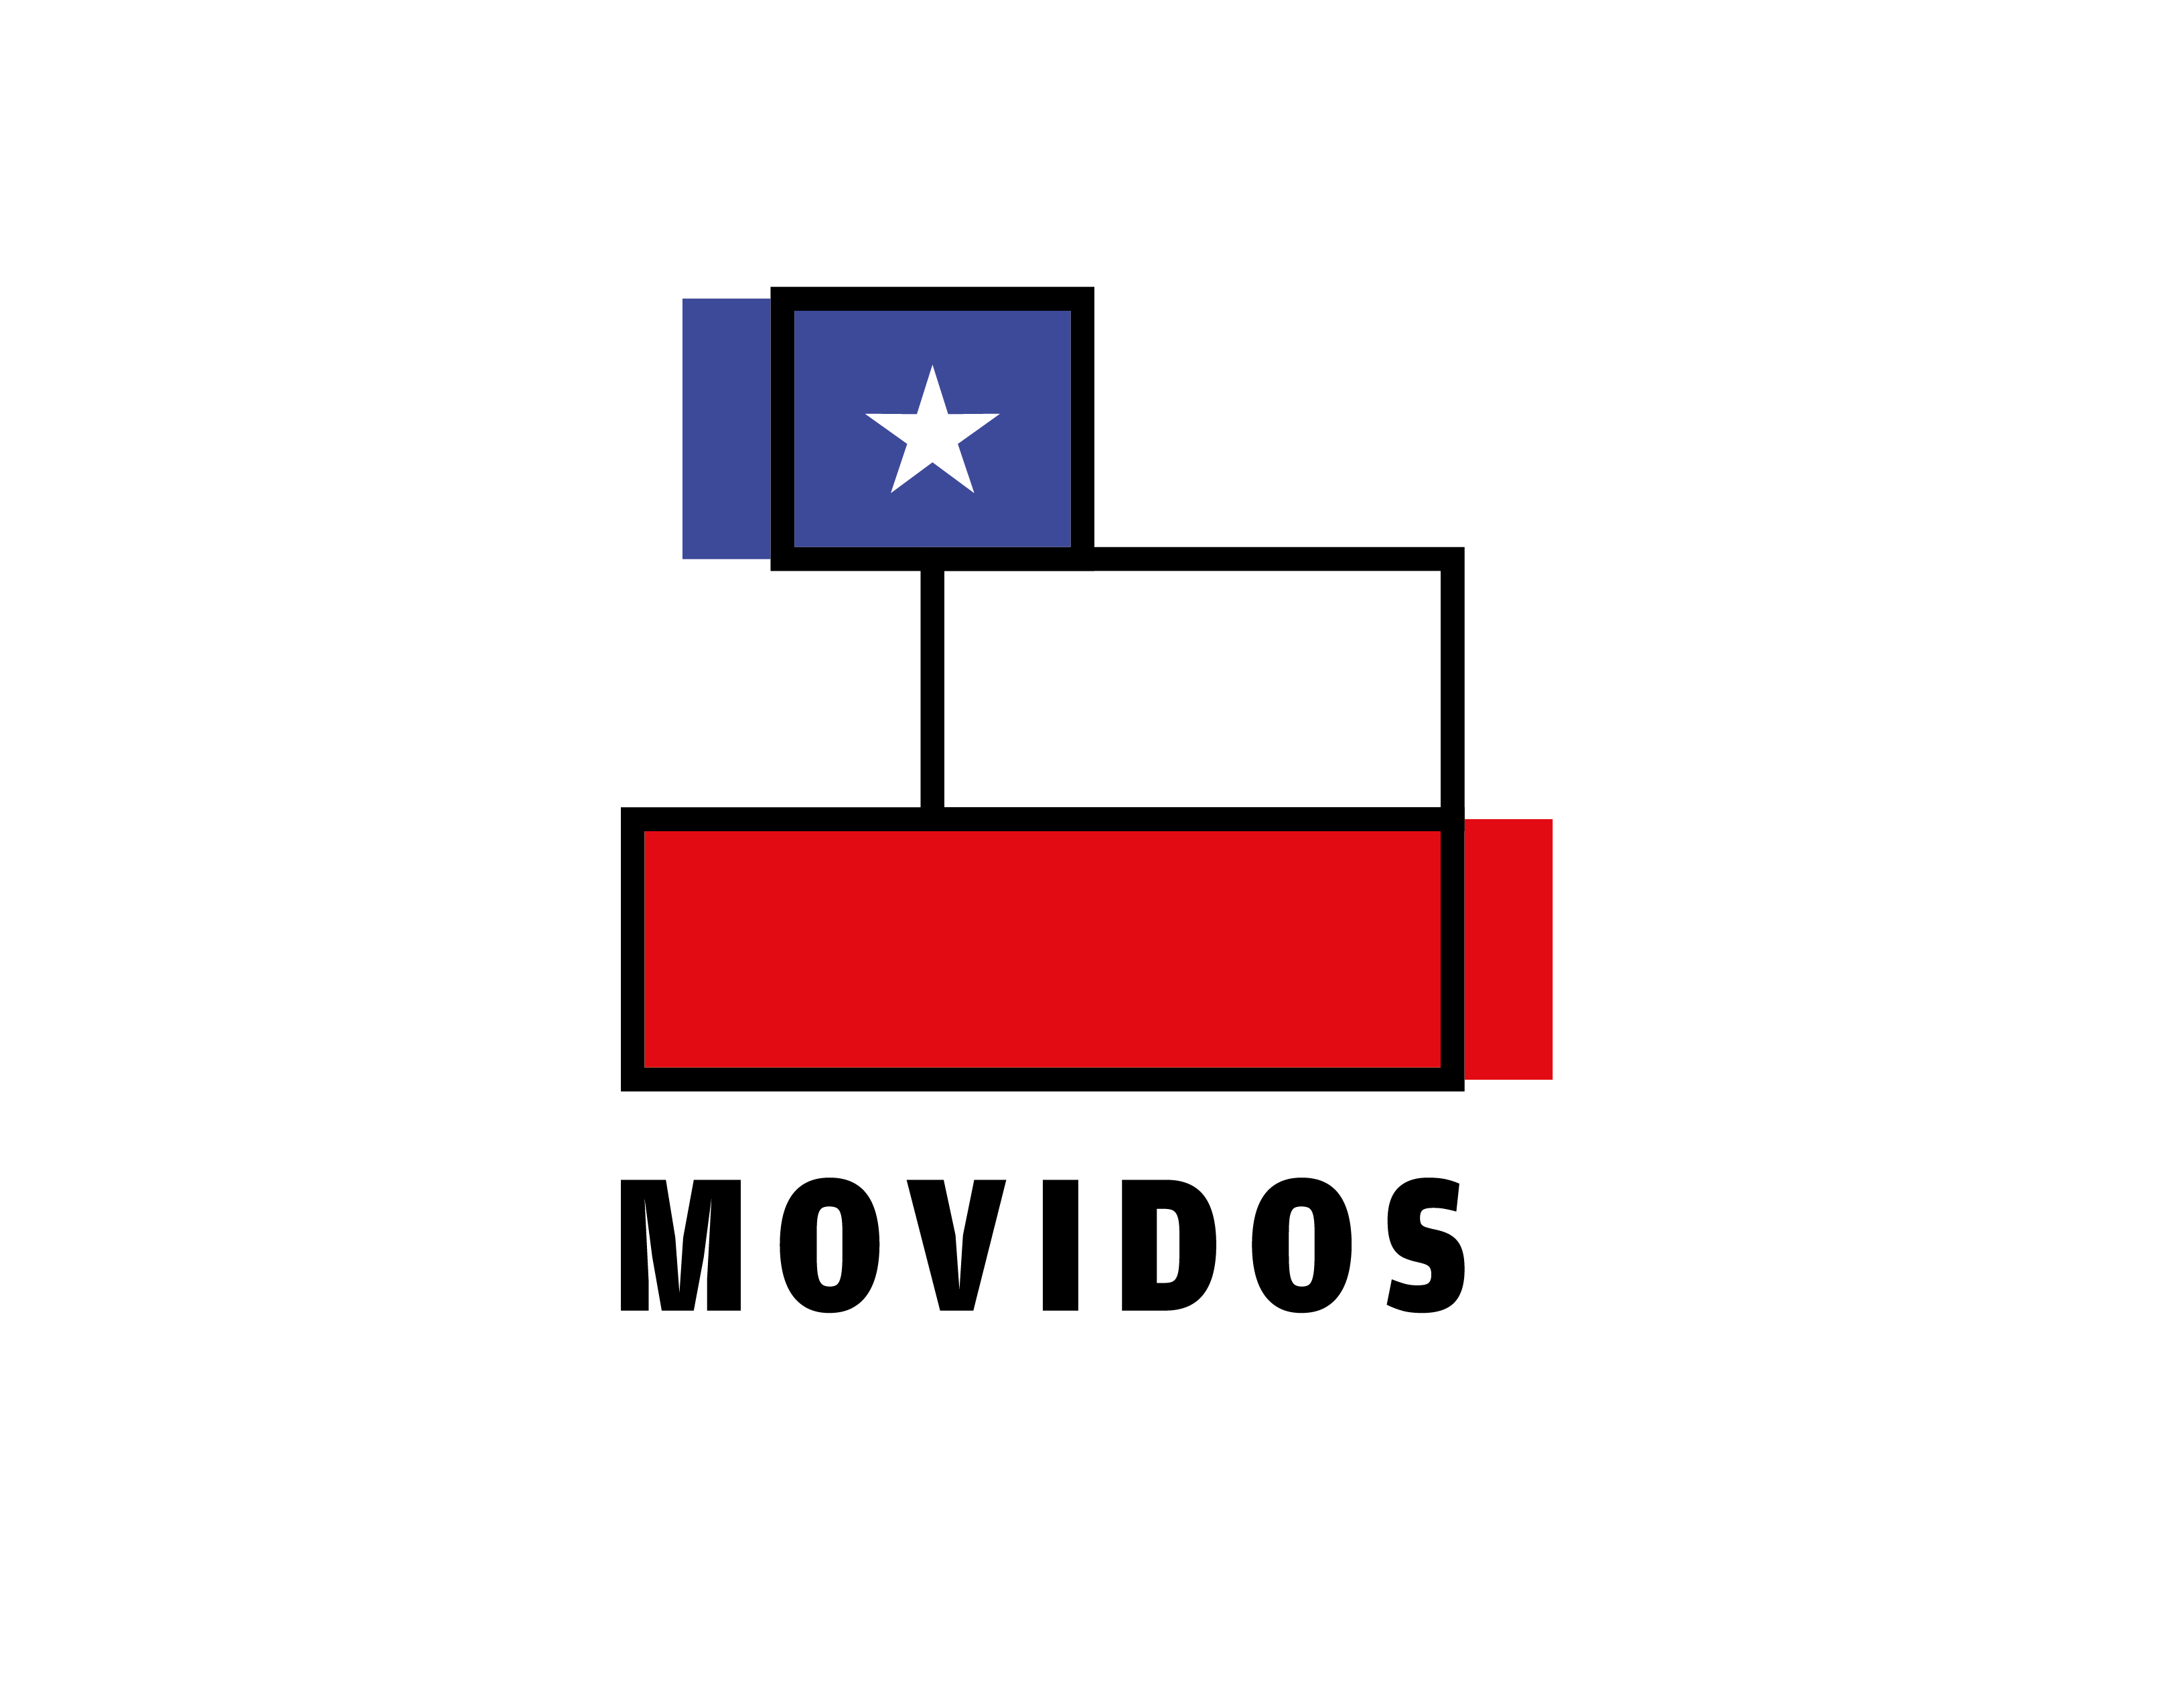 #MovidosxChile